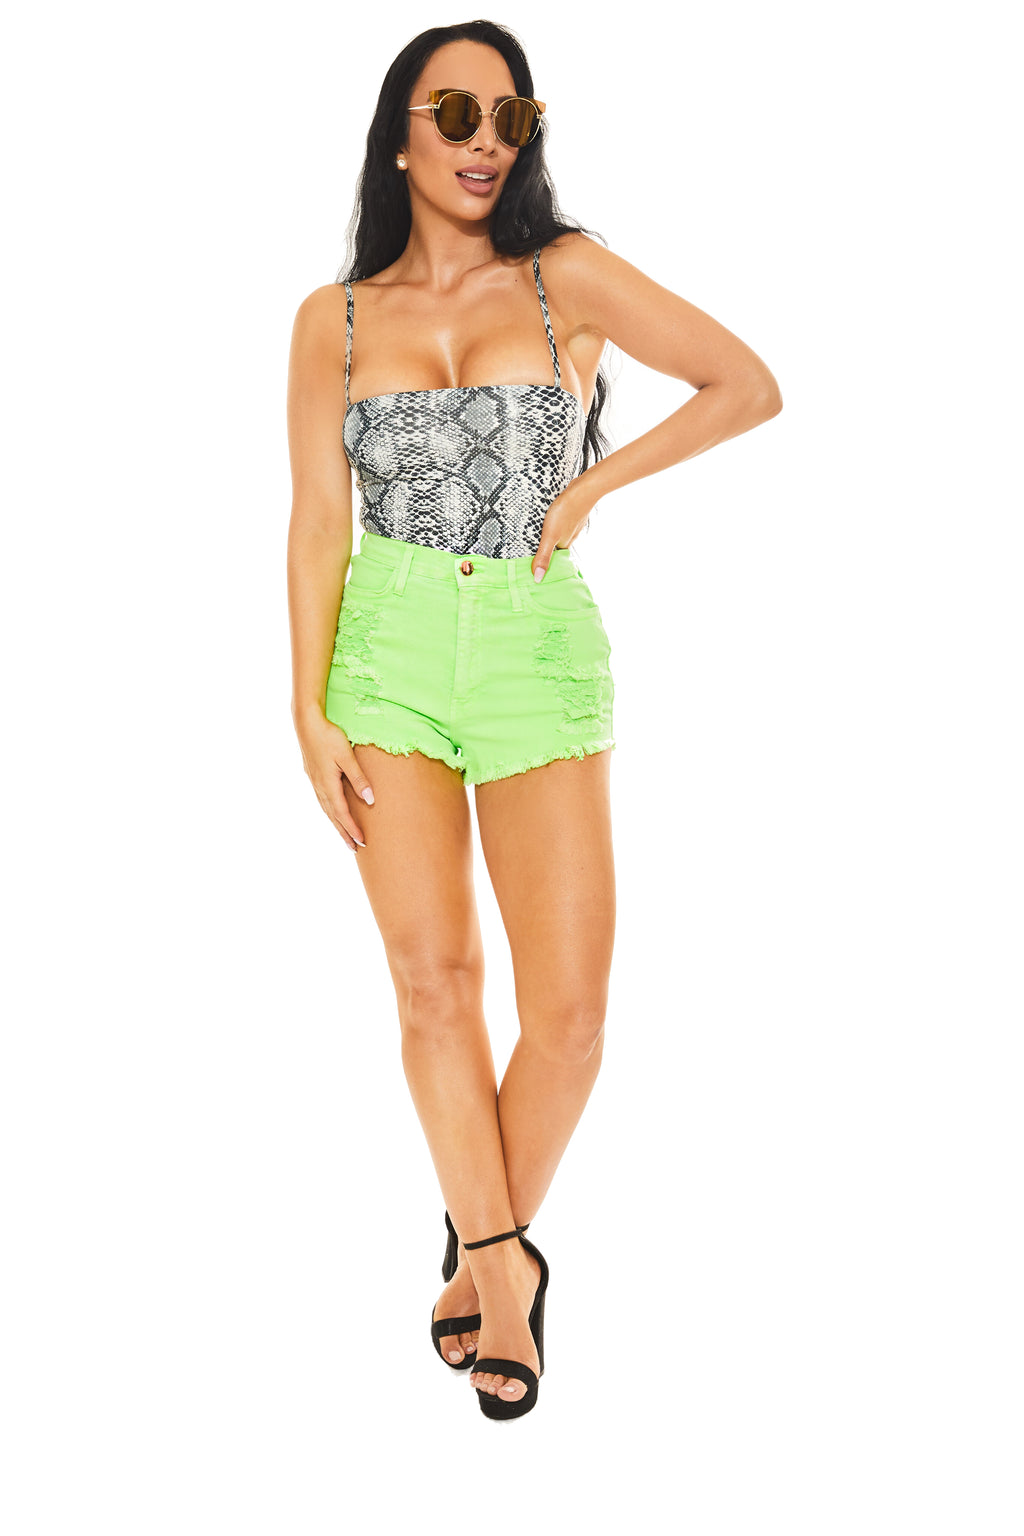 GREEN DREAM - Denim Shorts - www.prettyboutique.com